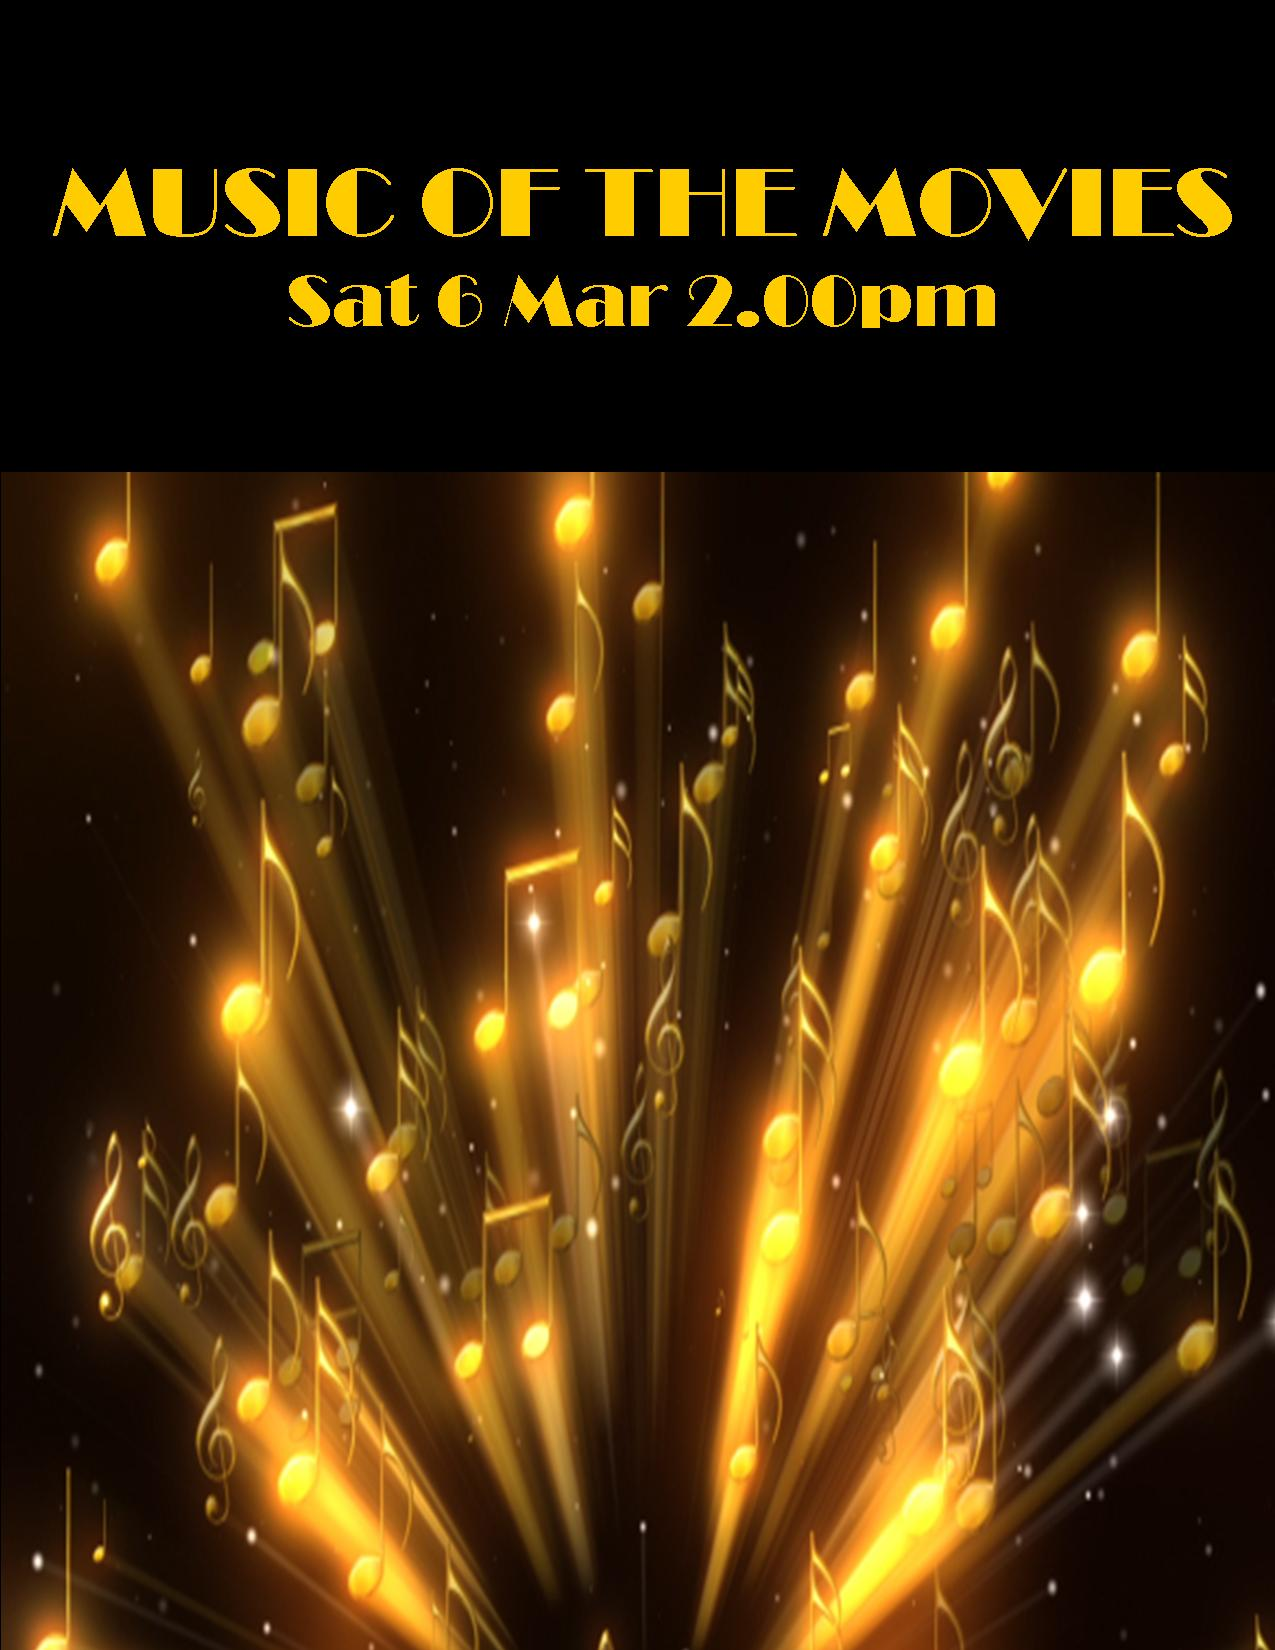 MUSIC OF THE MOVIES SAT 6 MAR 2.00PM